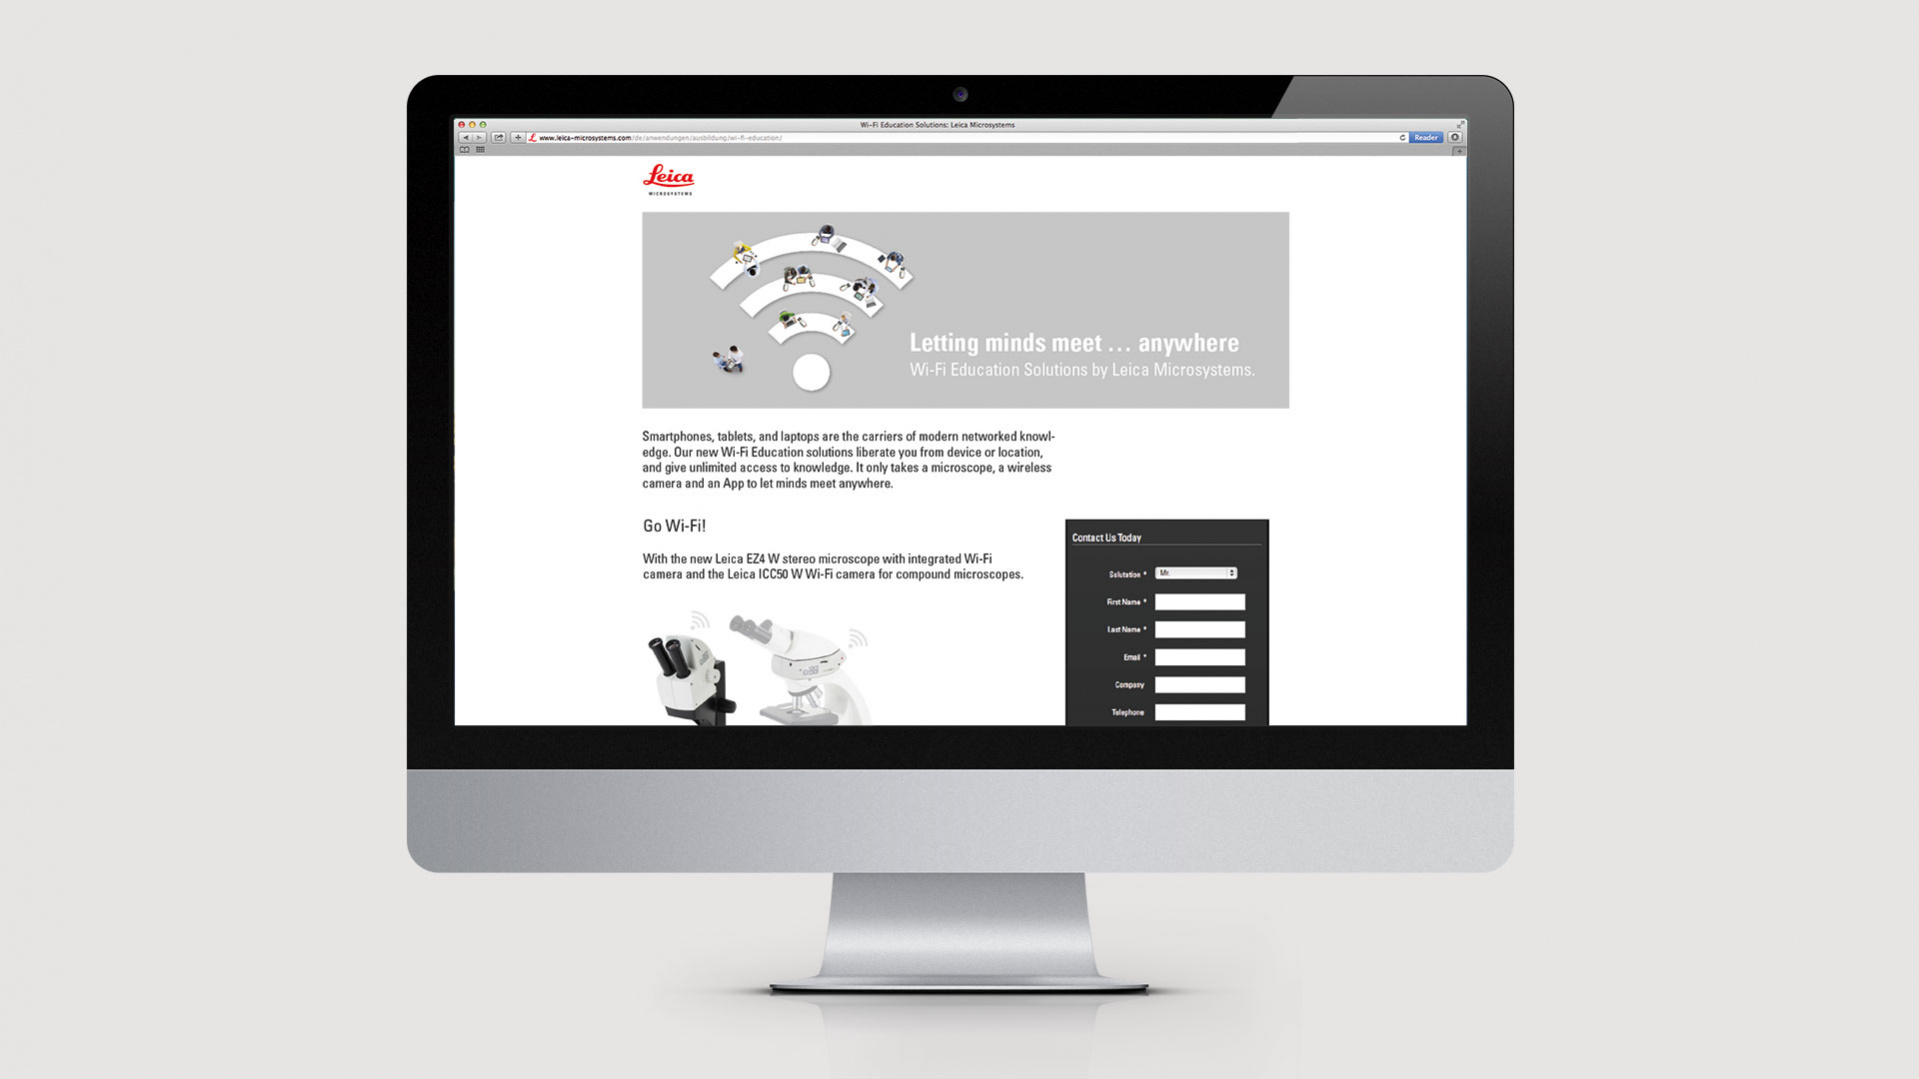 kampagn_leica_microsystems_wifi_education_solutions_microsite